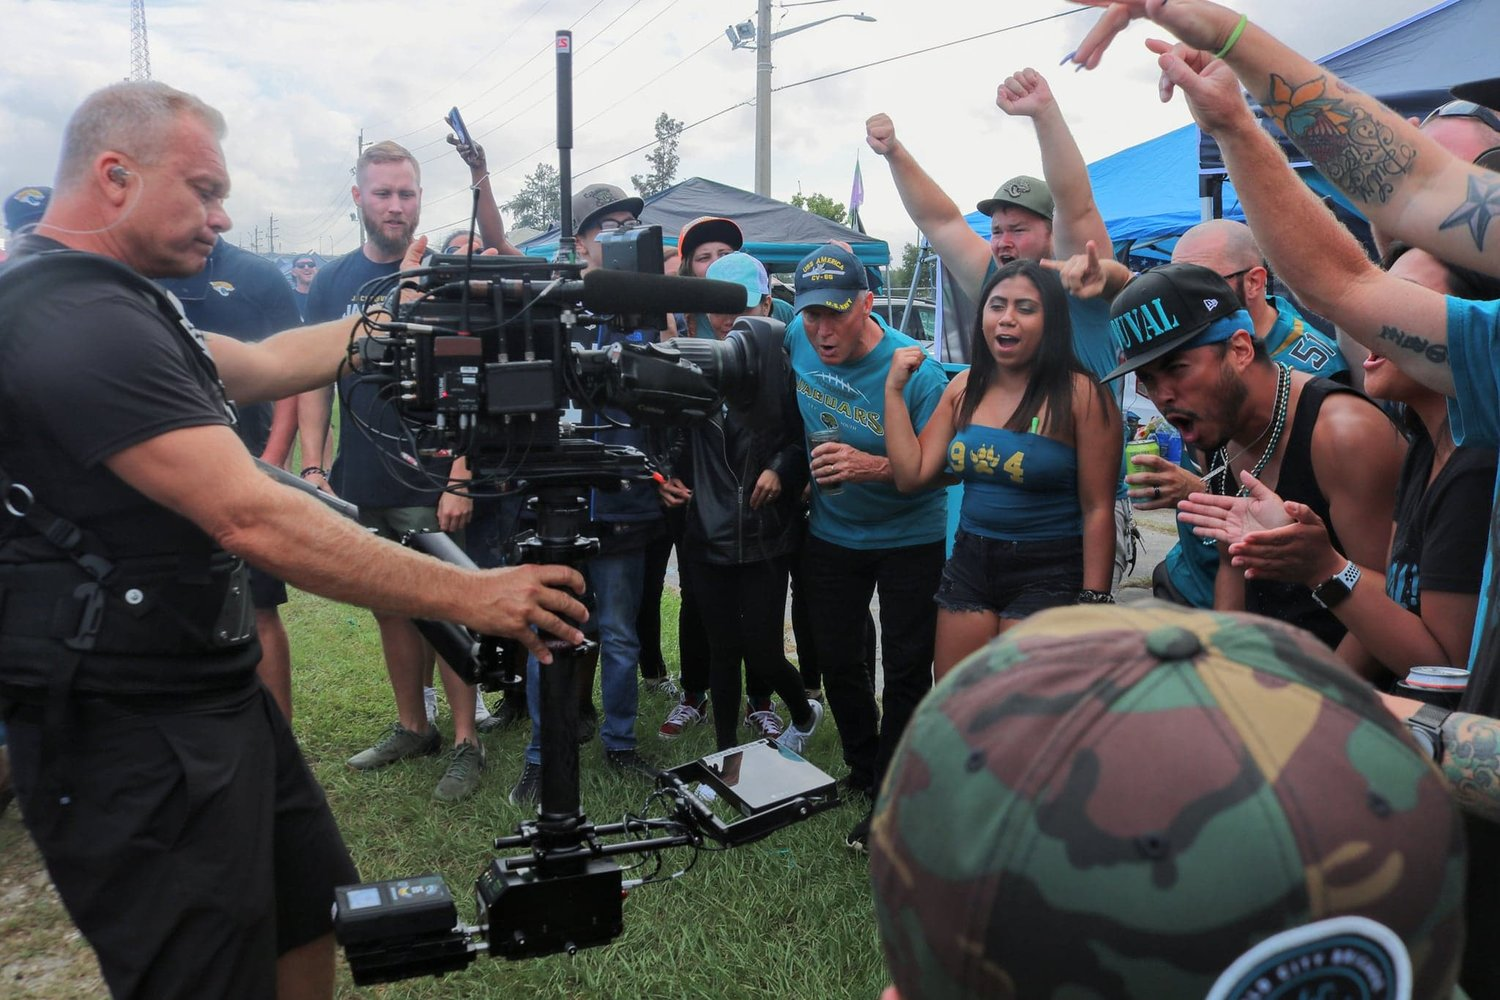 A cameraman from the NFL Network films Jacksonville Jaguars fans as they cheer for their team.